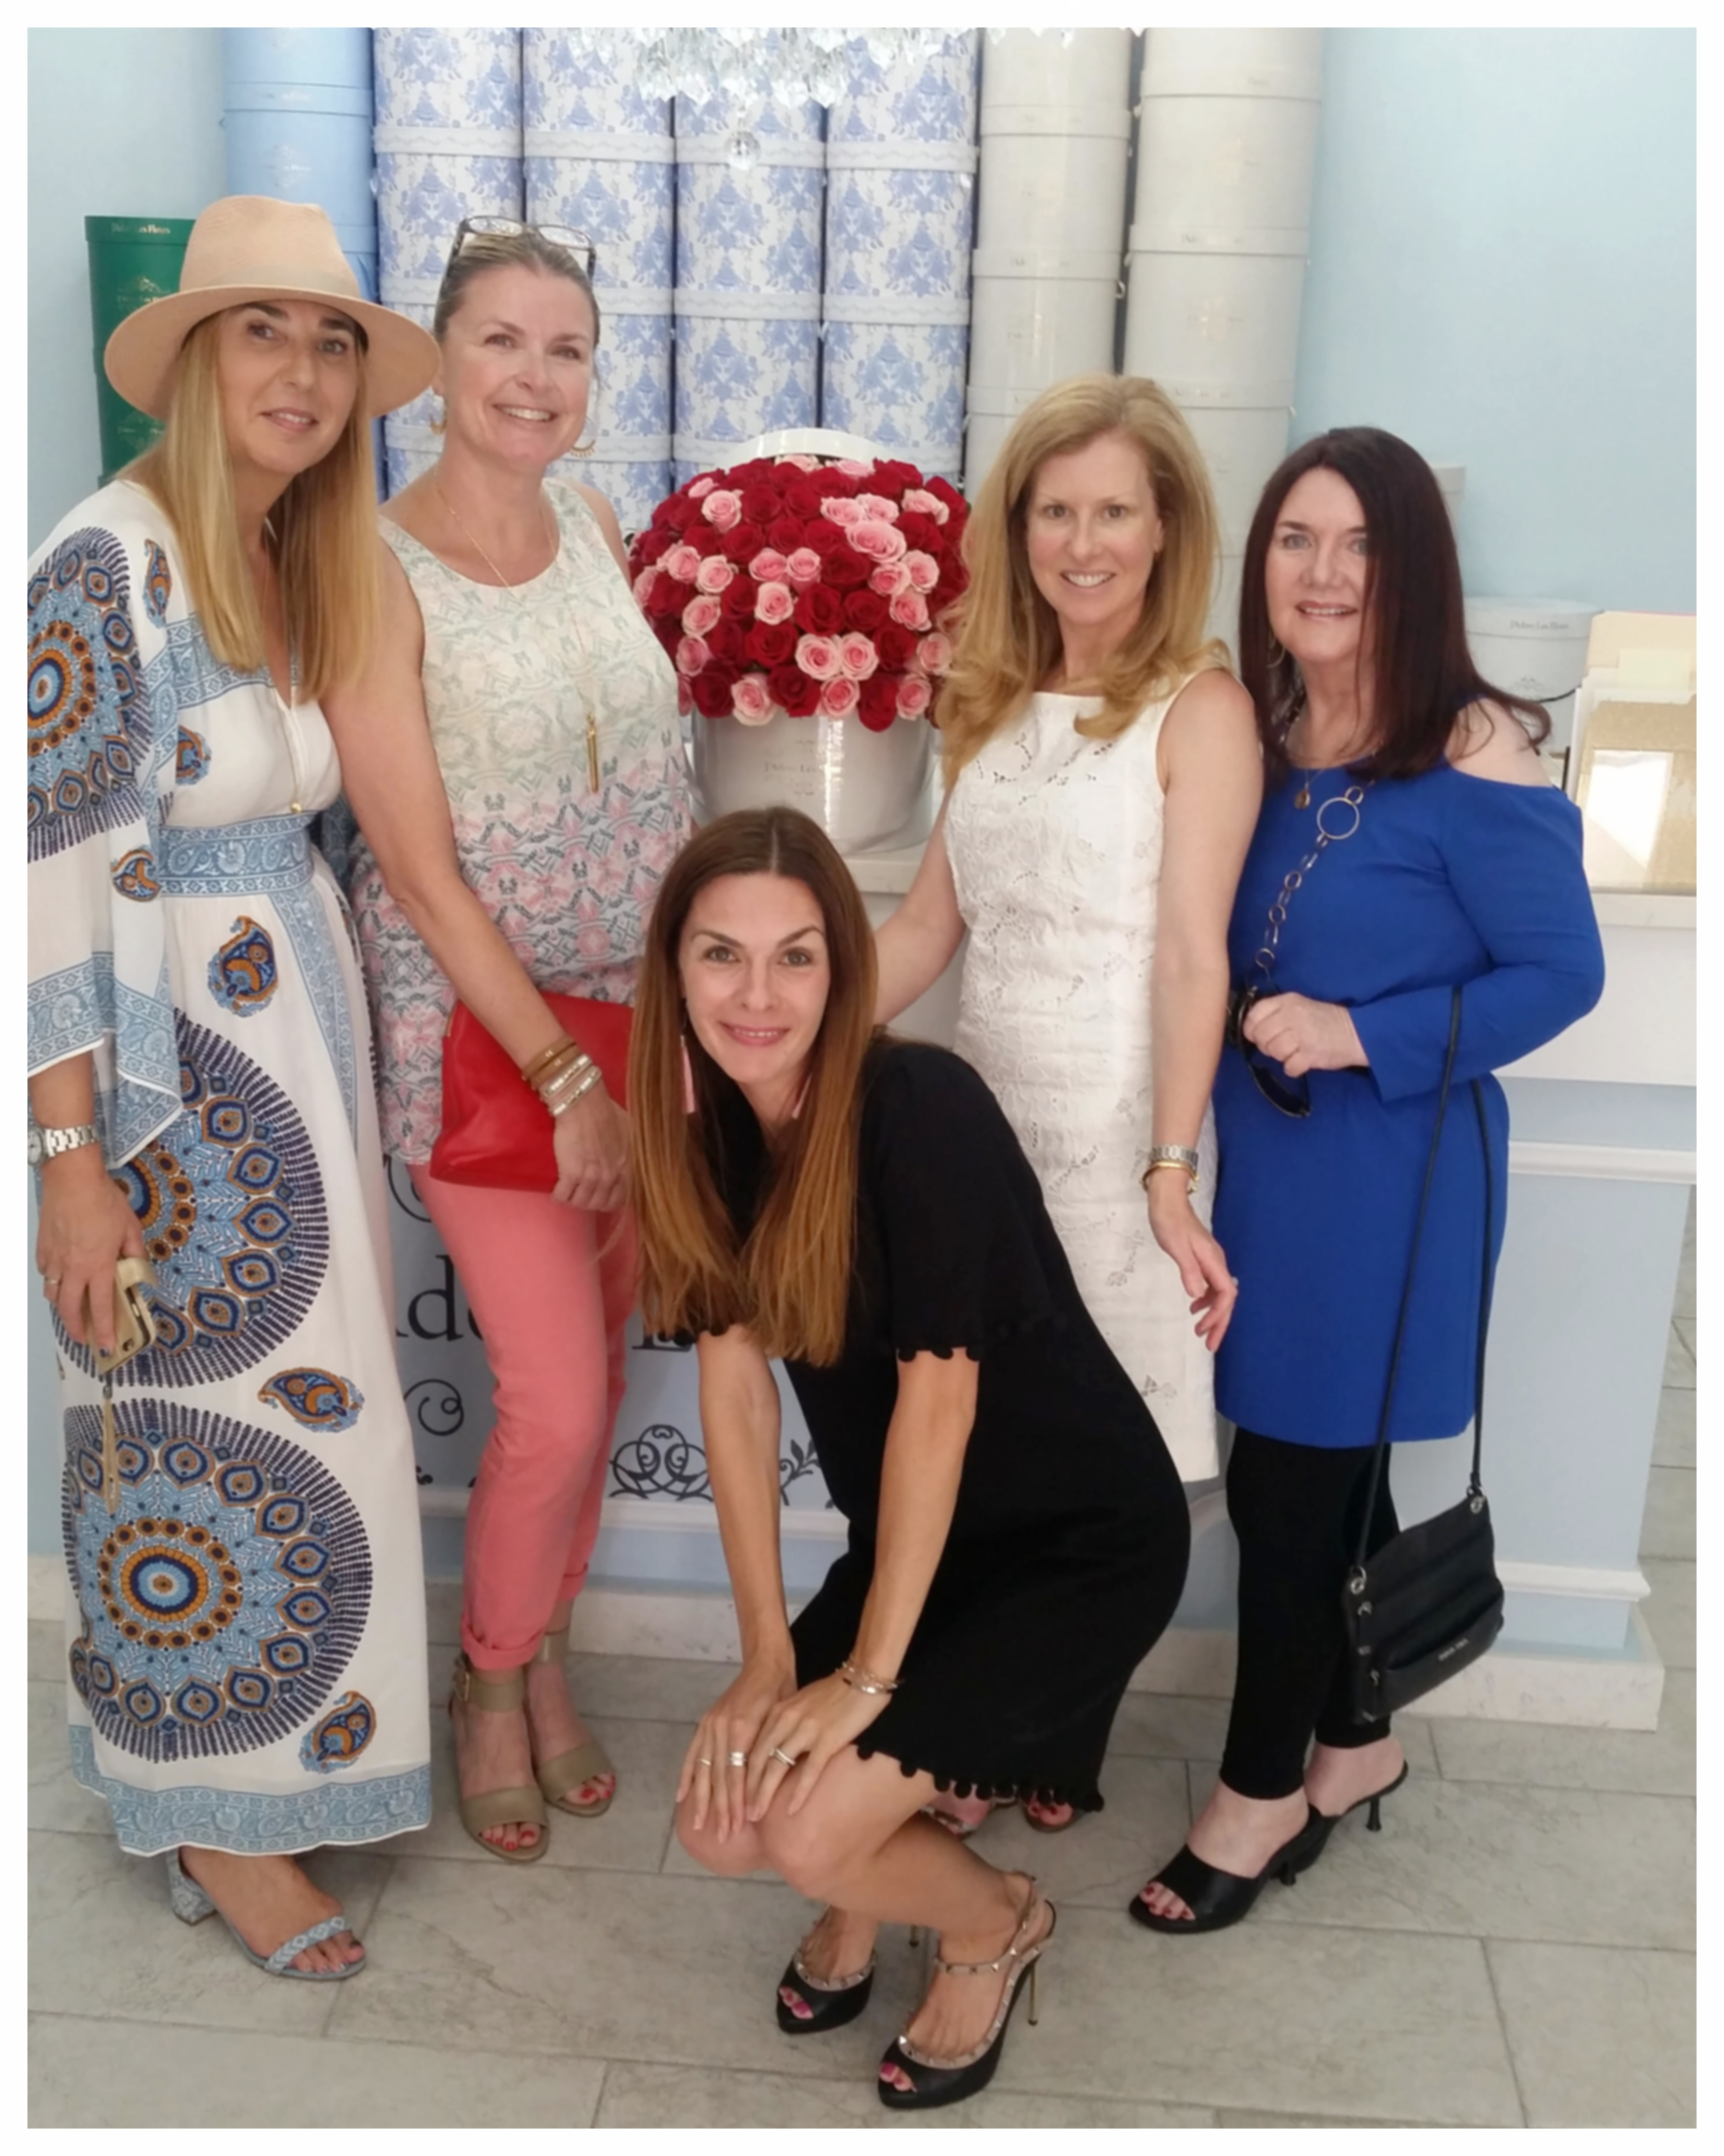 Check out Lorena's Facebook page for more India Hicks Inspiration